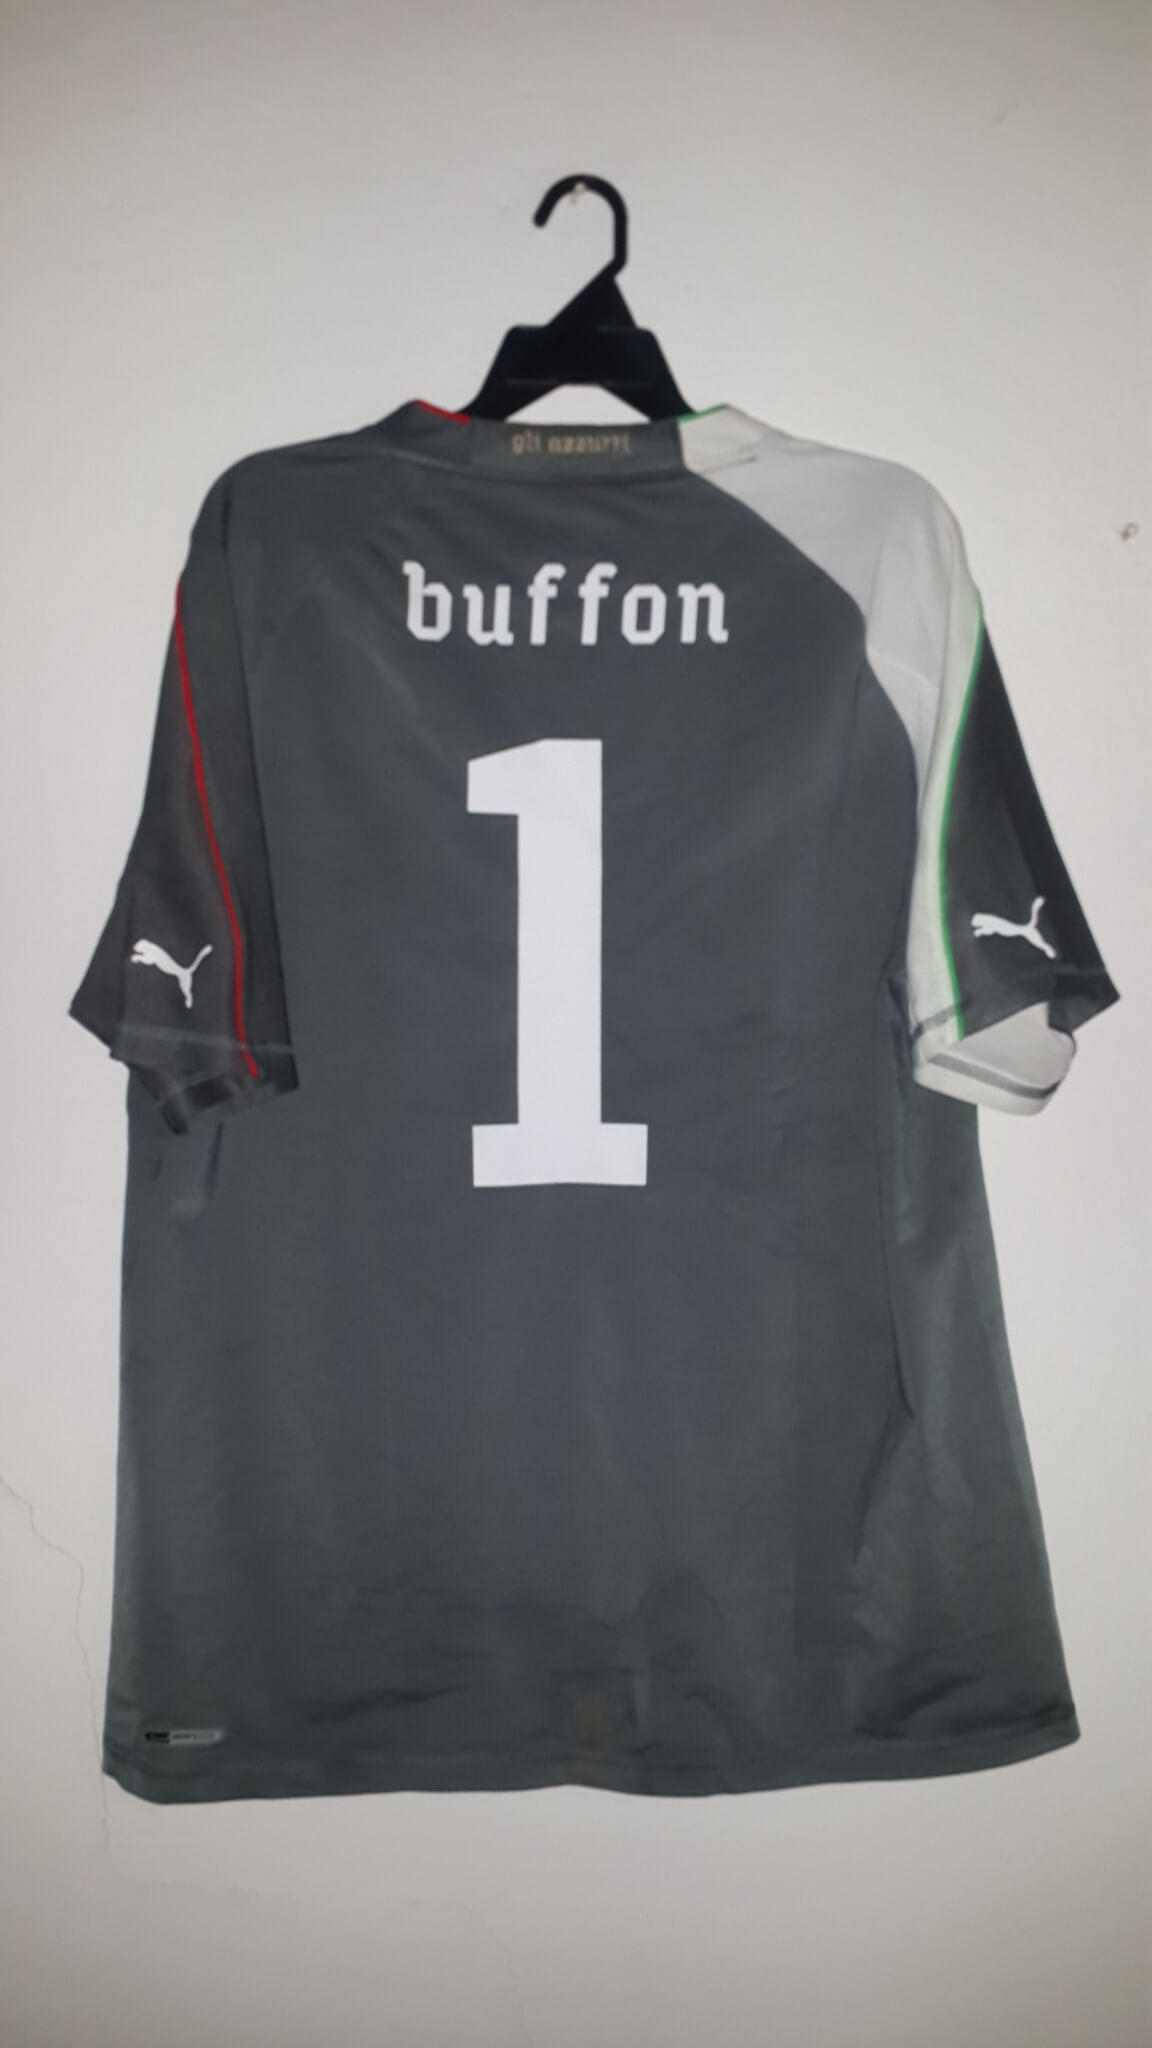 77f65cfbc05 A Gianluigi Buffon Game-Used Unwashed  1 Italy Away Shirt Mexico vs Italy  (2-1) 2010 World Cup Friendly Match 06 03 2010